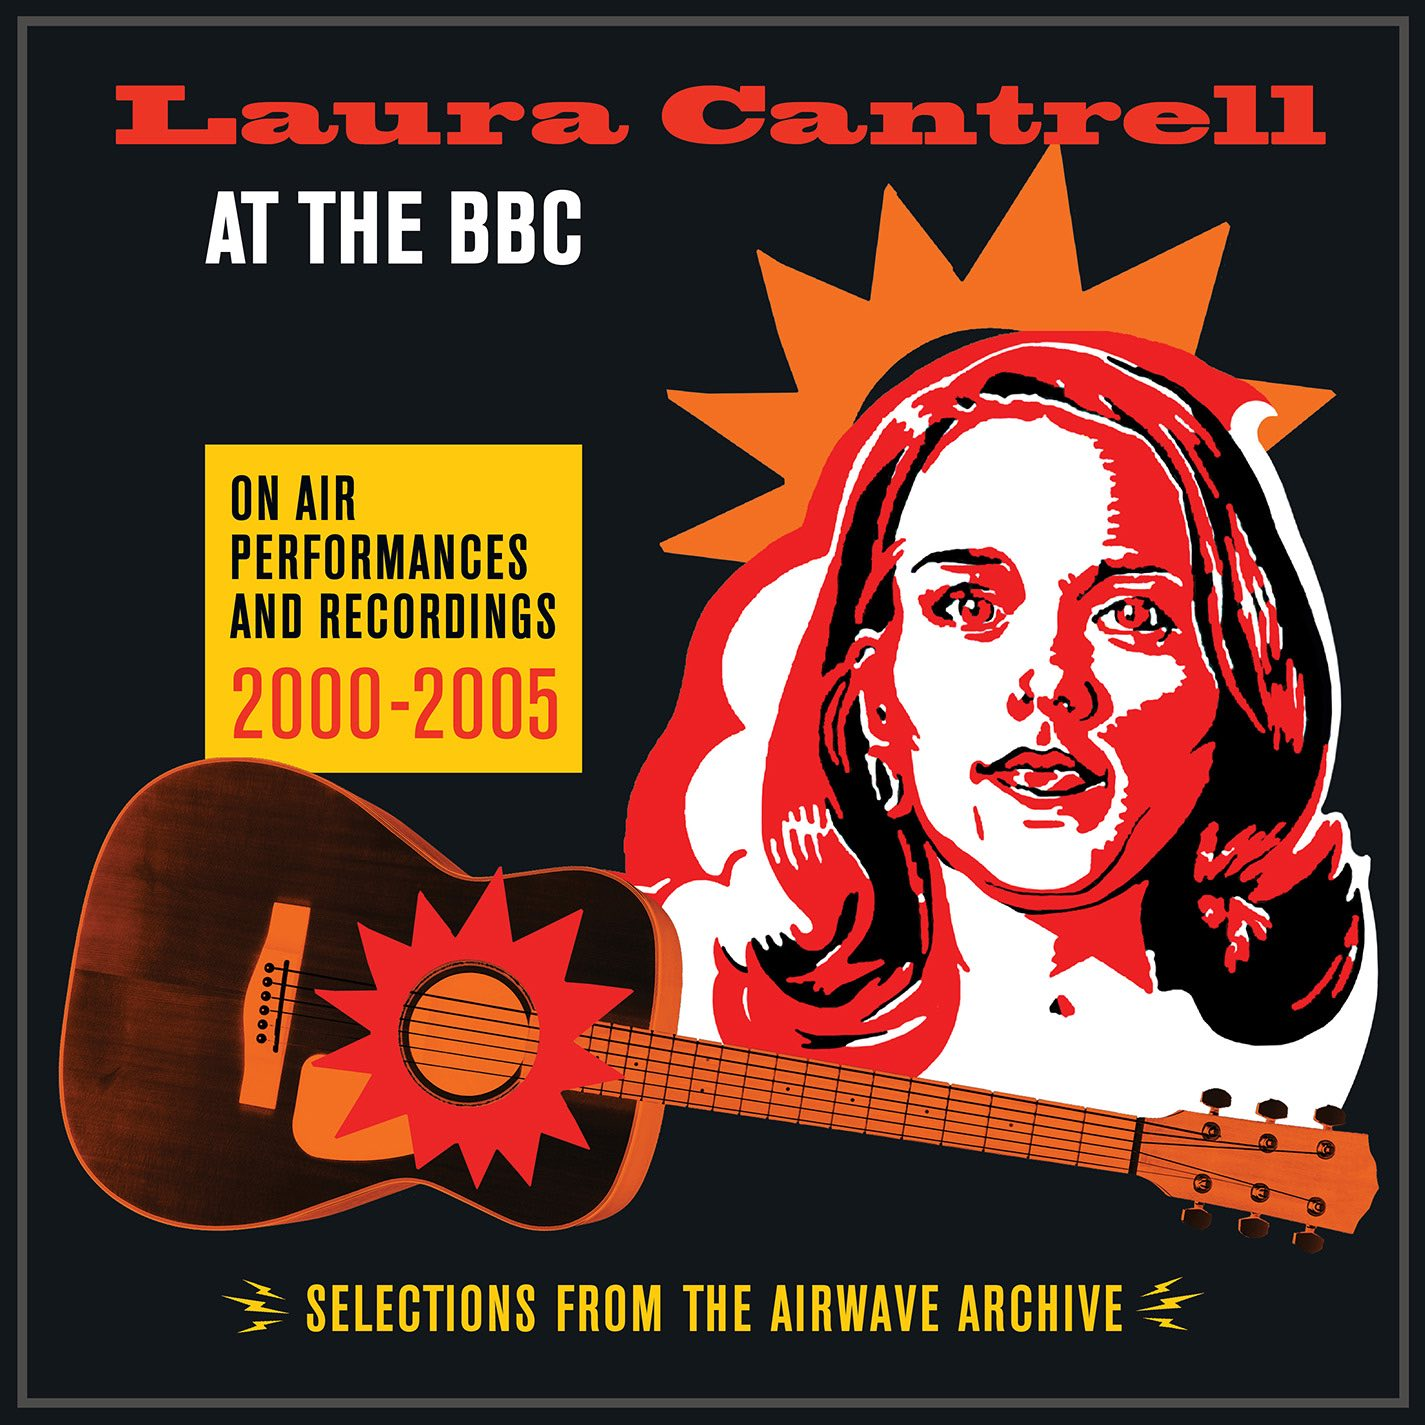 Laura Cantrell - At the BBC album art